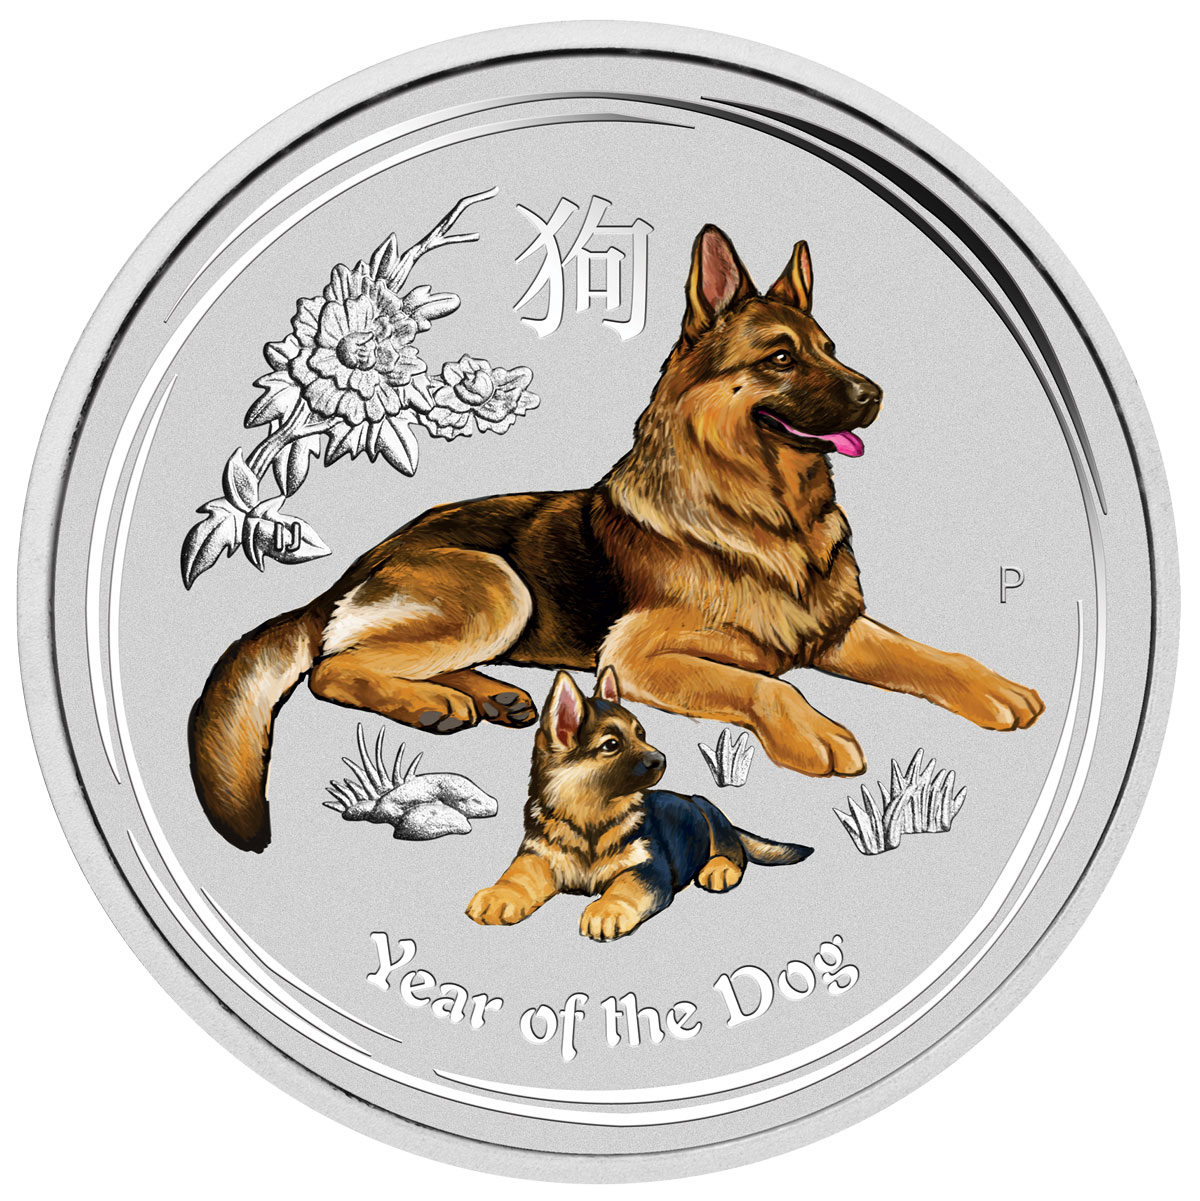 2018-P Australia Year of the Dog 1/4 oz Silver Lunar (Series 2) Colorized $0.25 Coin GEM BU